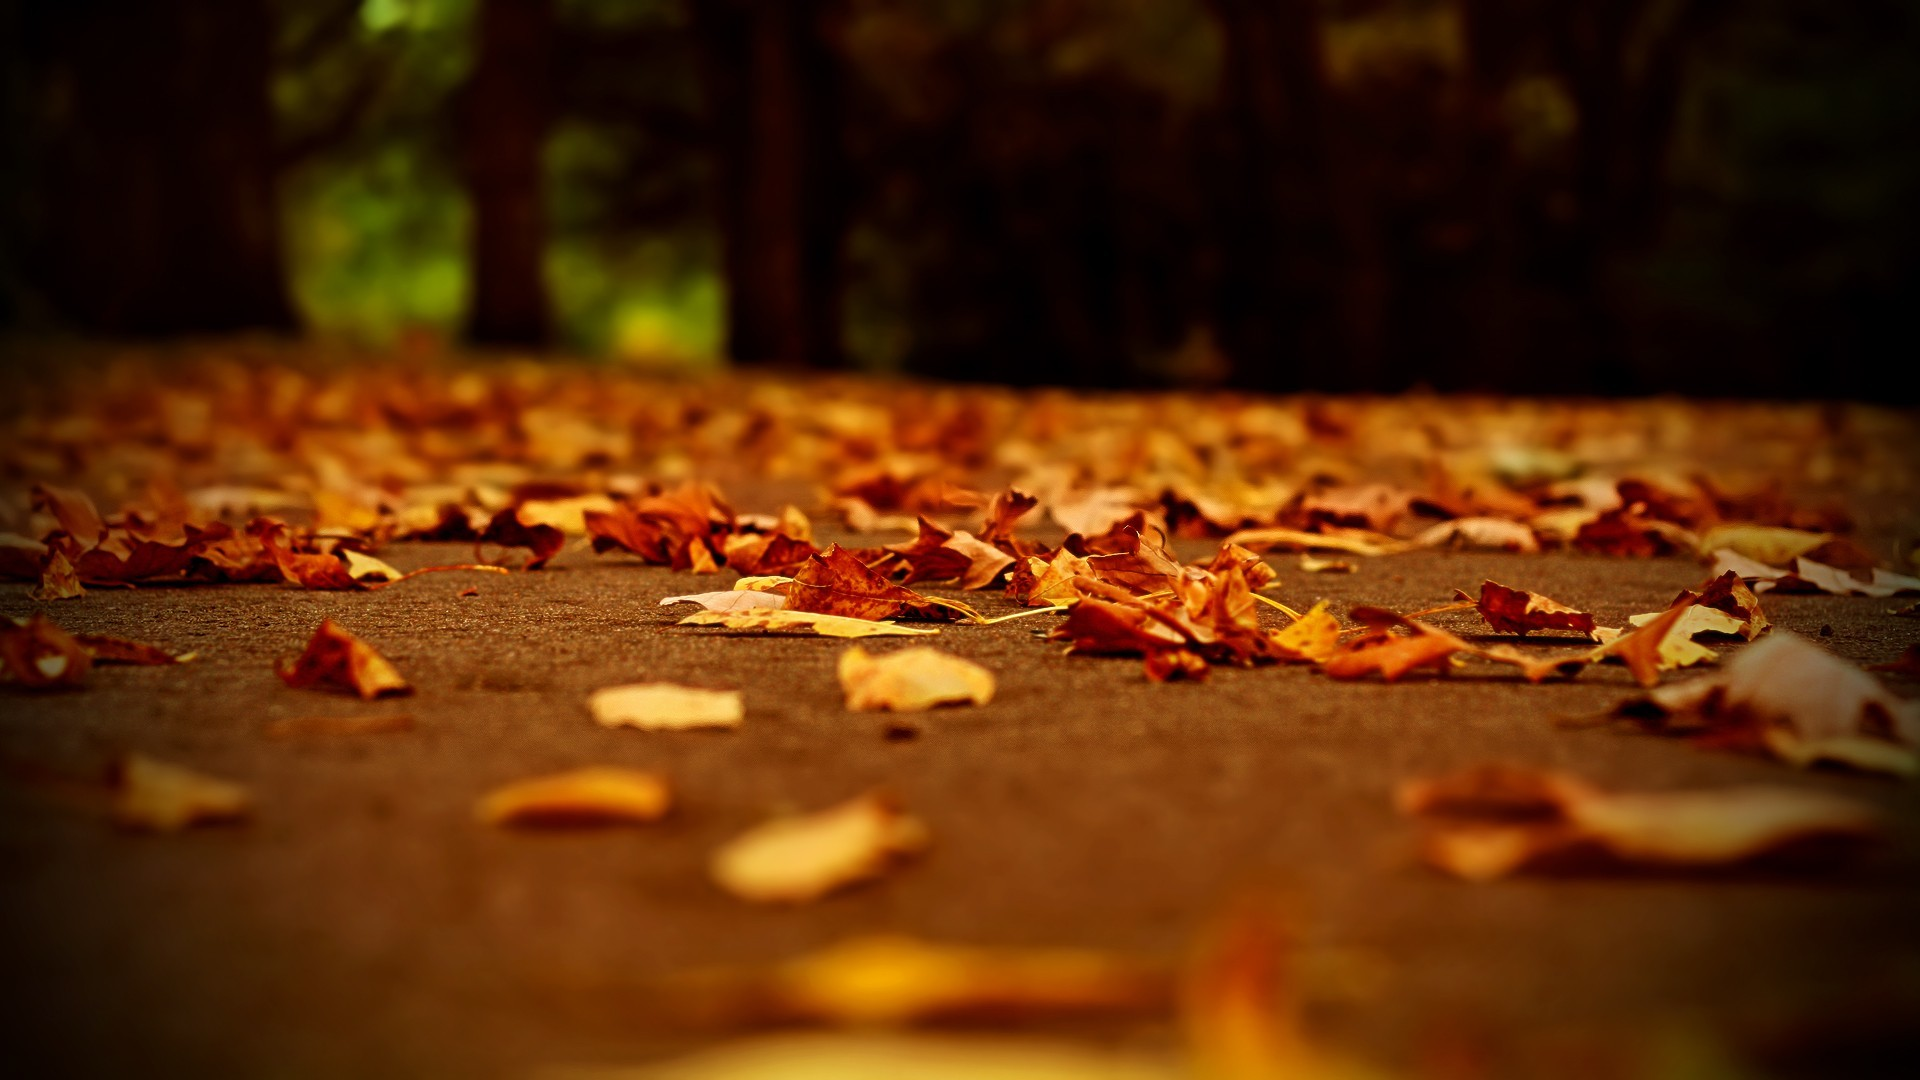 Find this Pin and more on Beauty. autumn leaves depth of field fallen  leaves wallpaper